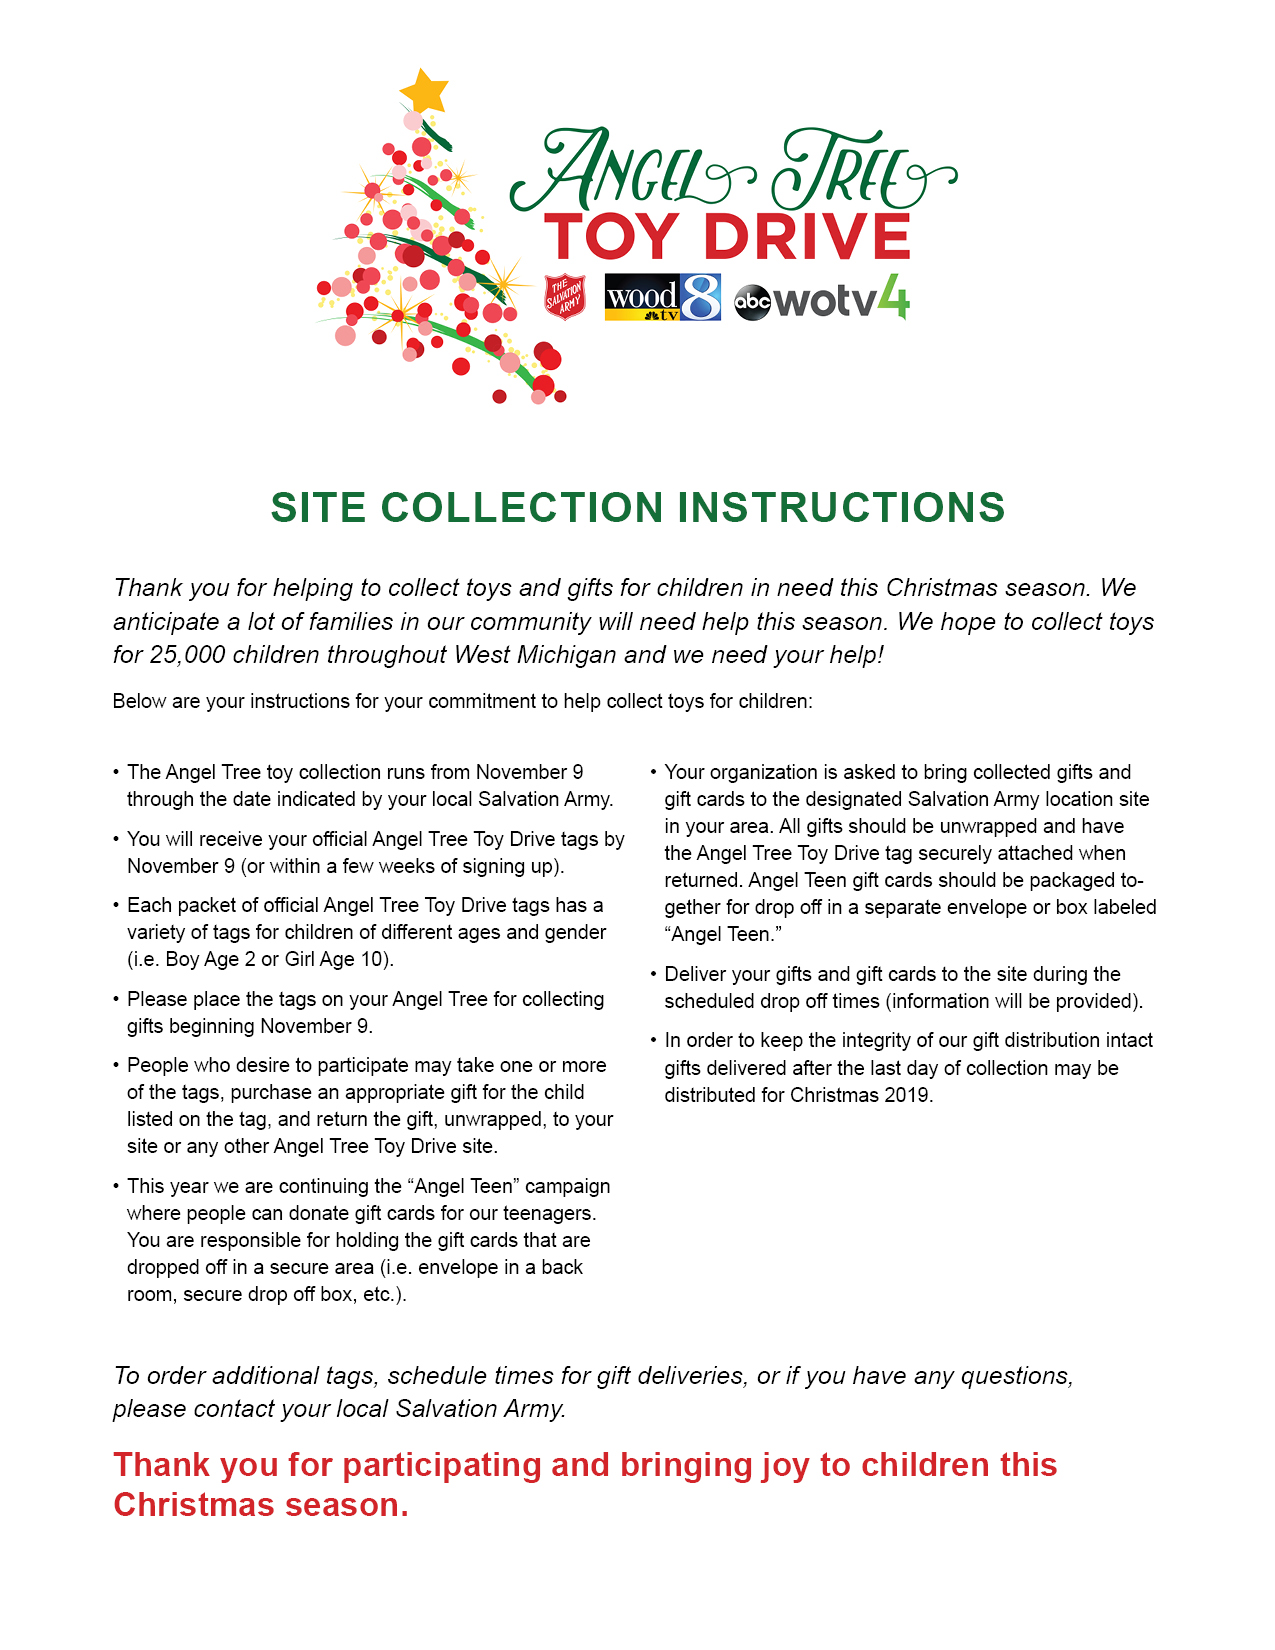 Angel Tree Resources - Western Michigan and Northern Indiana